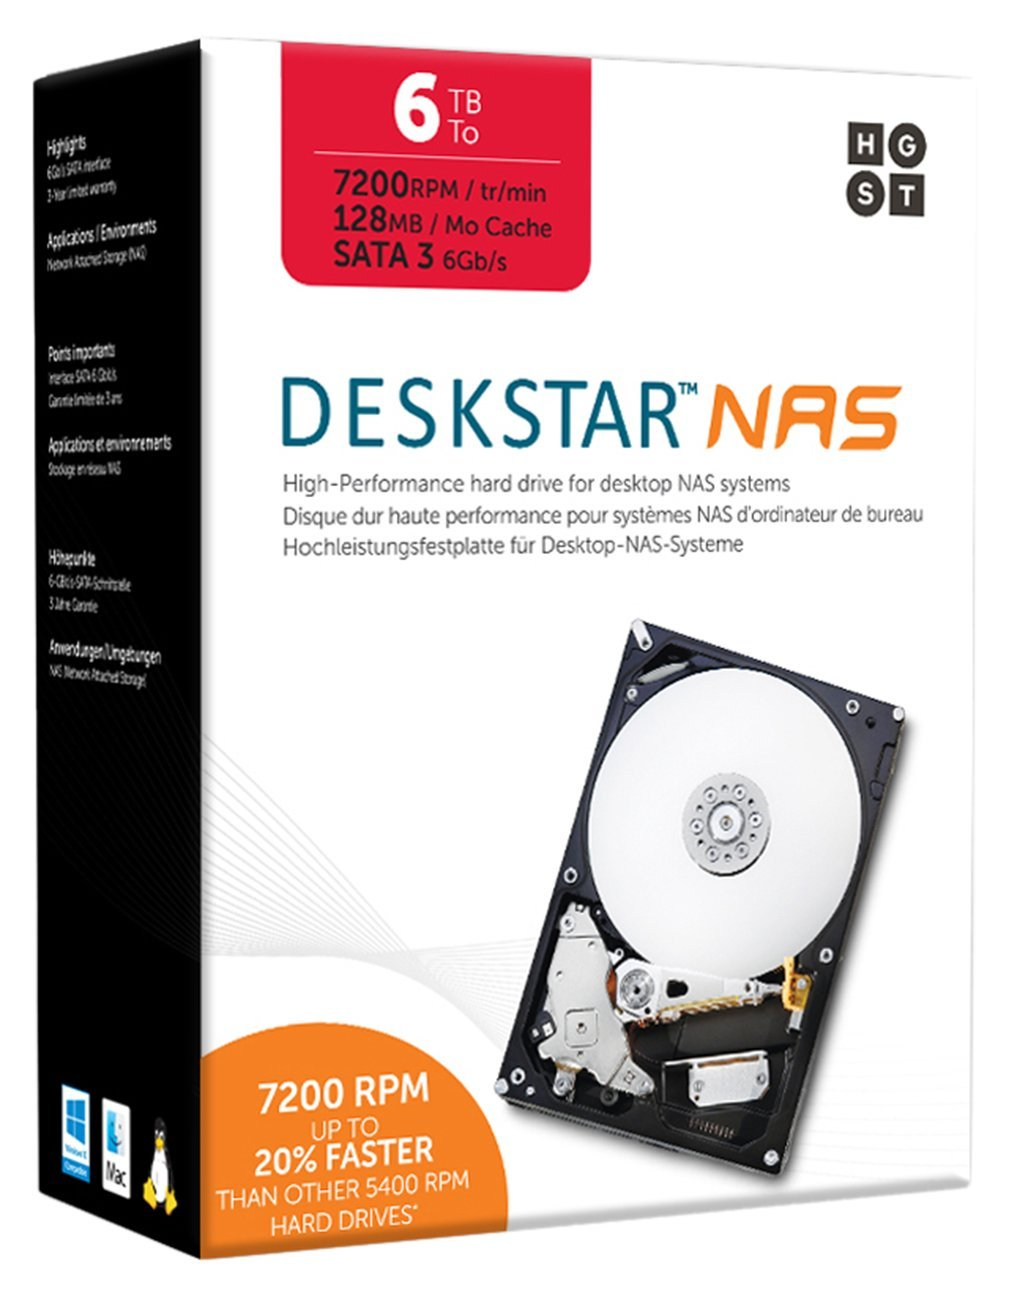 HGST DeskStar NAS 3.5'' 6TB 7200 RPM 128MB Cache SATA 6.0Gb/s High-Performance Hard Drive for Desktop NAS Systems Retail Packaging 0S04007 by HGST - BRANDED